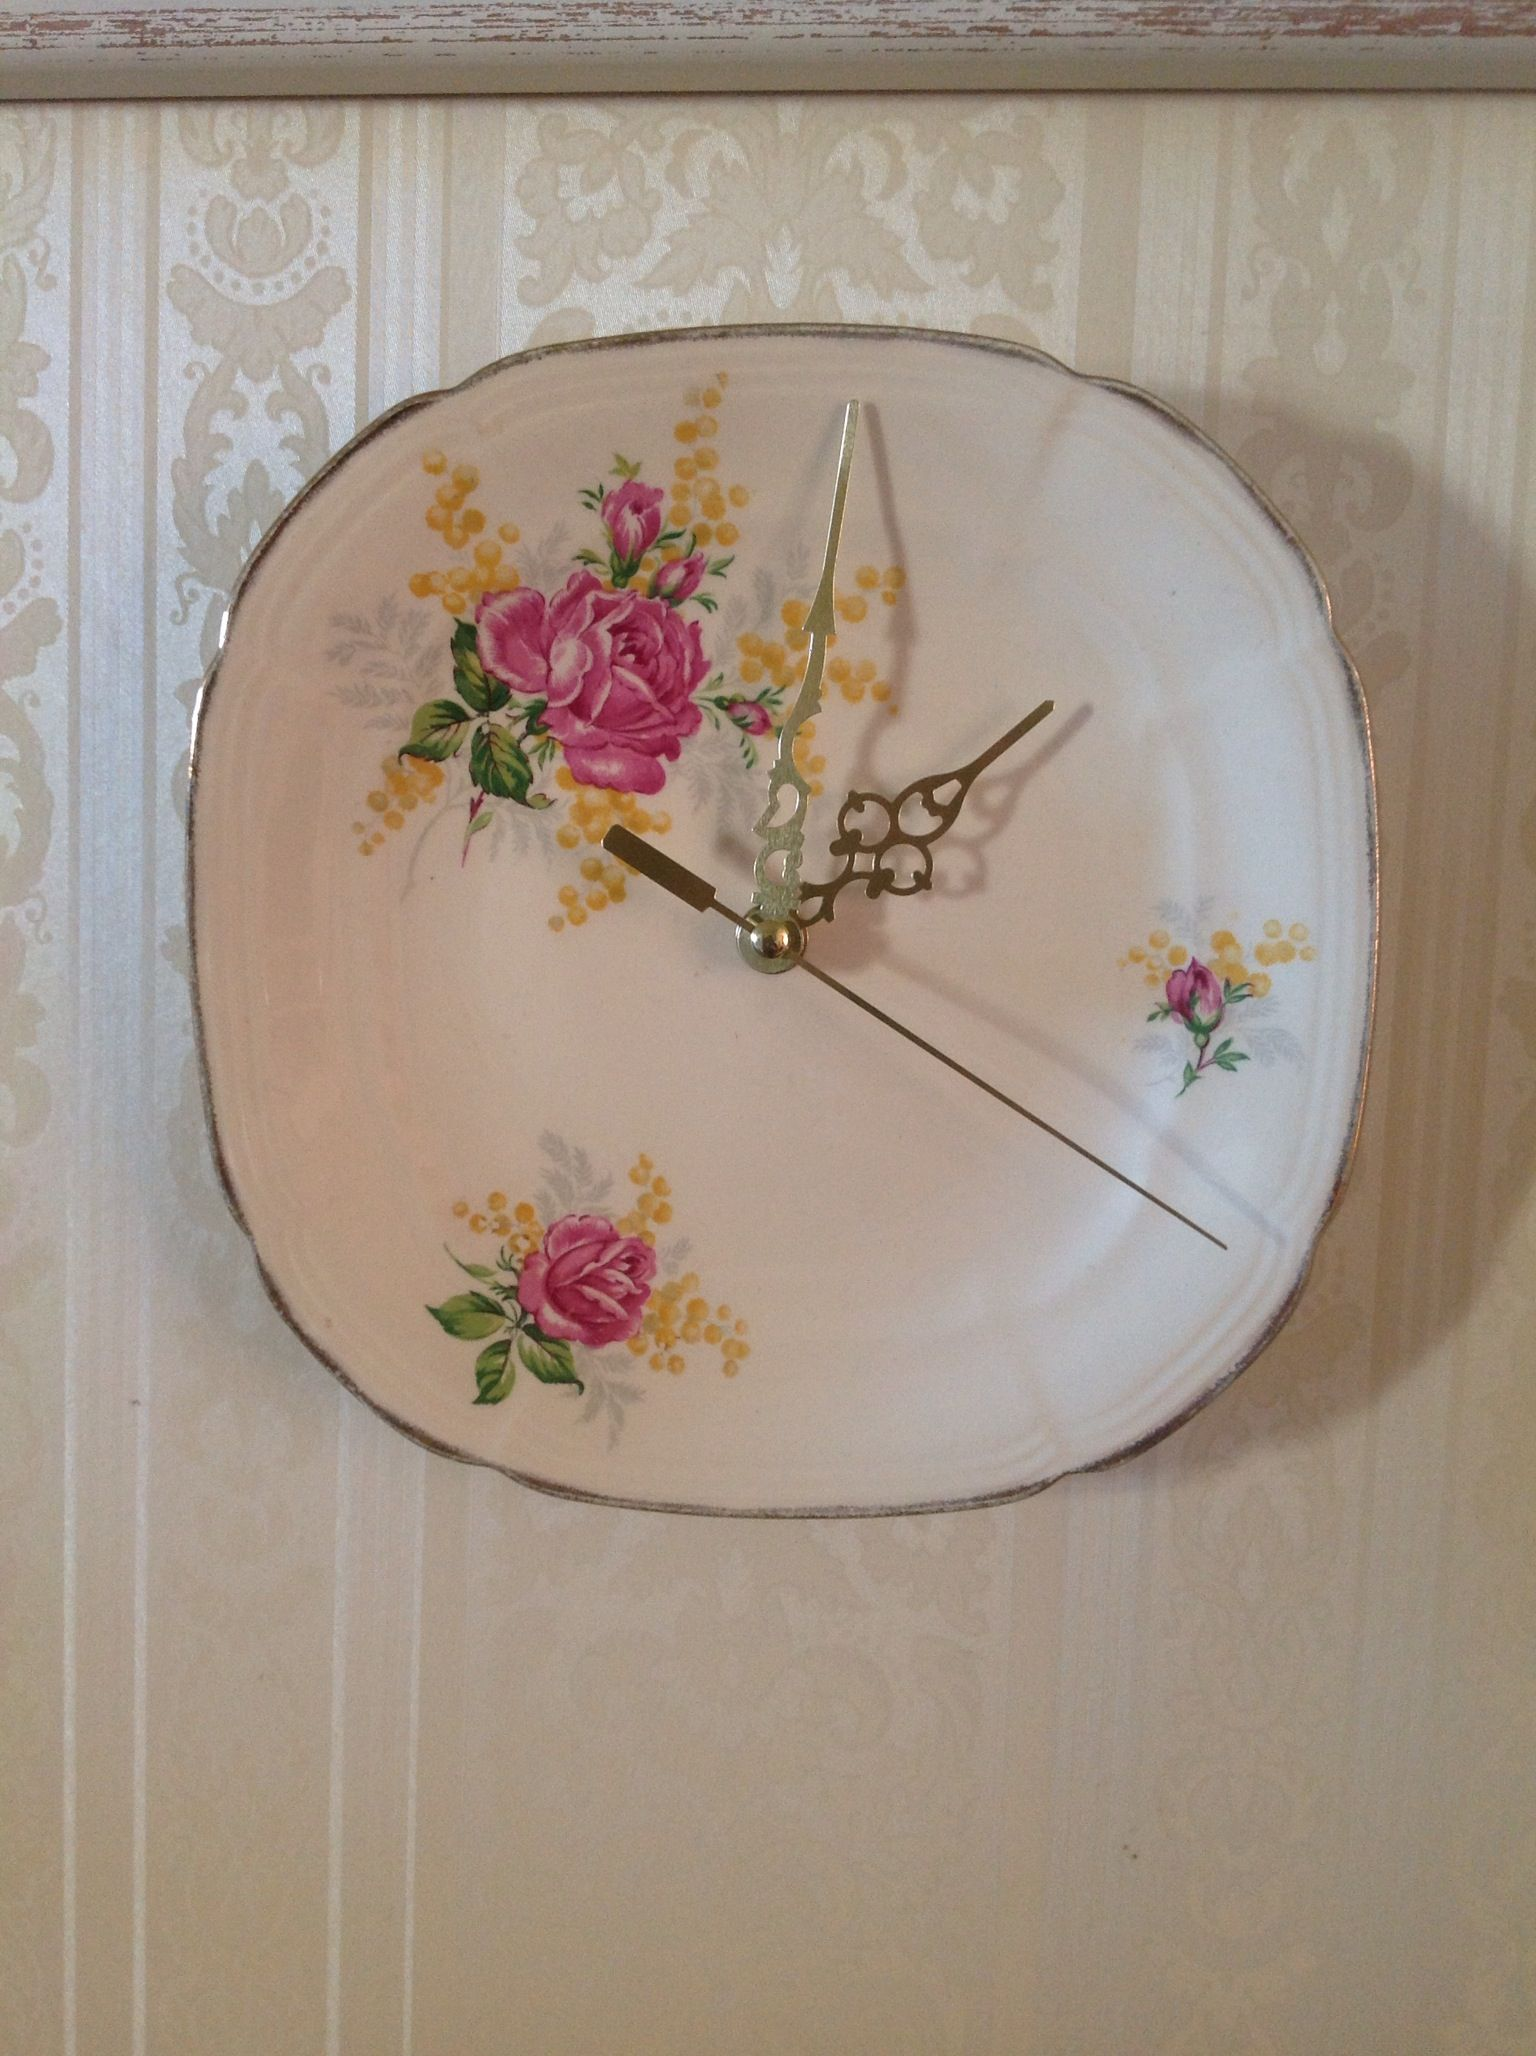 I made this Vintage Alfred Meakin plate into a  clock! Love the way it turned out.